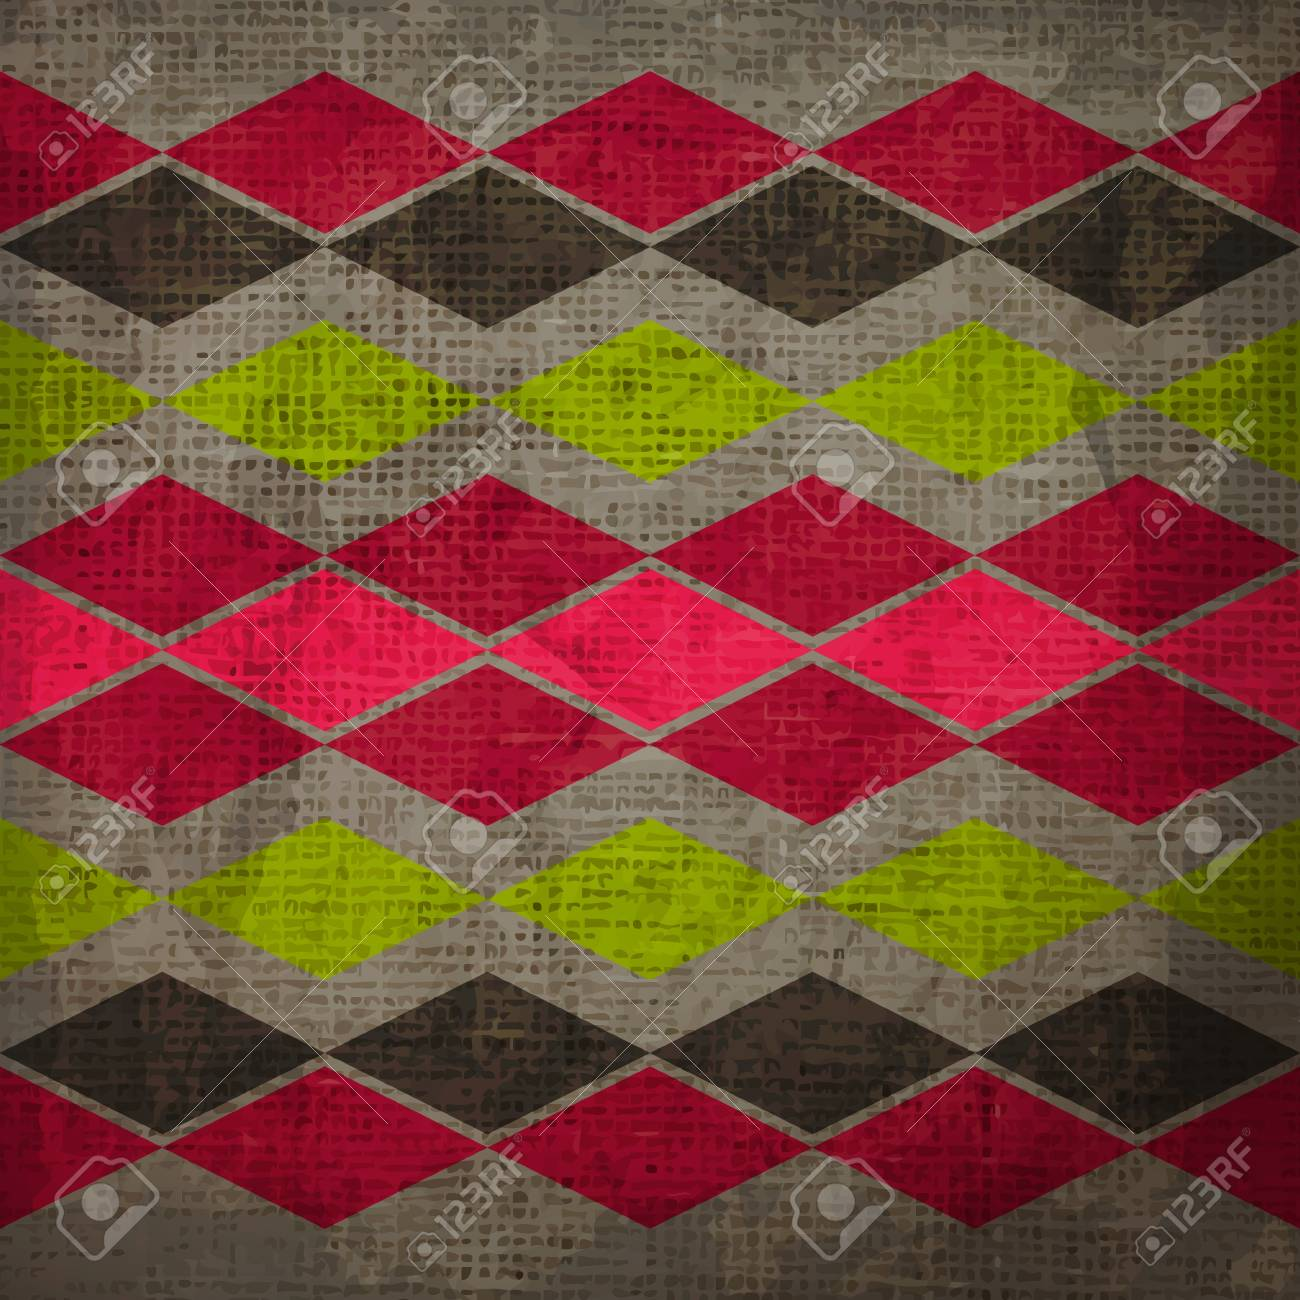 new abstract background with vintage style ornament can use like retro wallpaper Stock Vector - 17912502